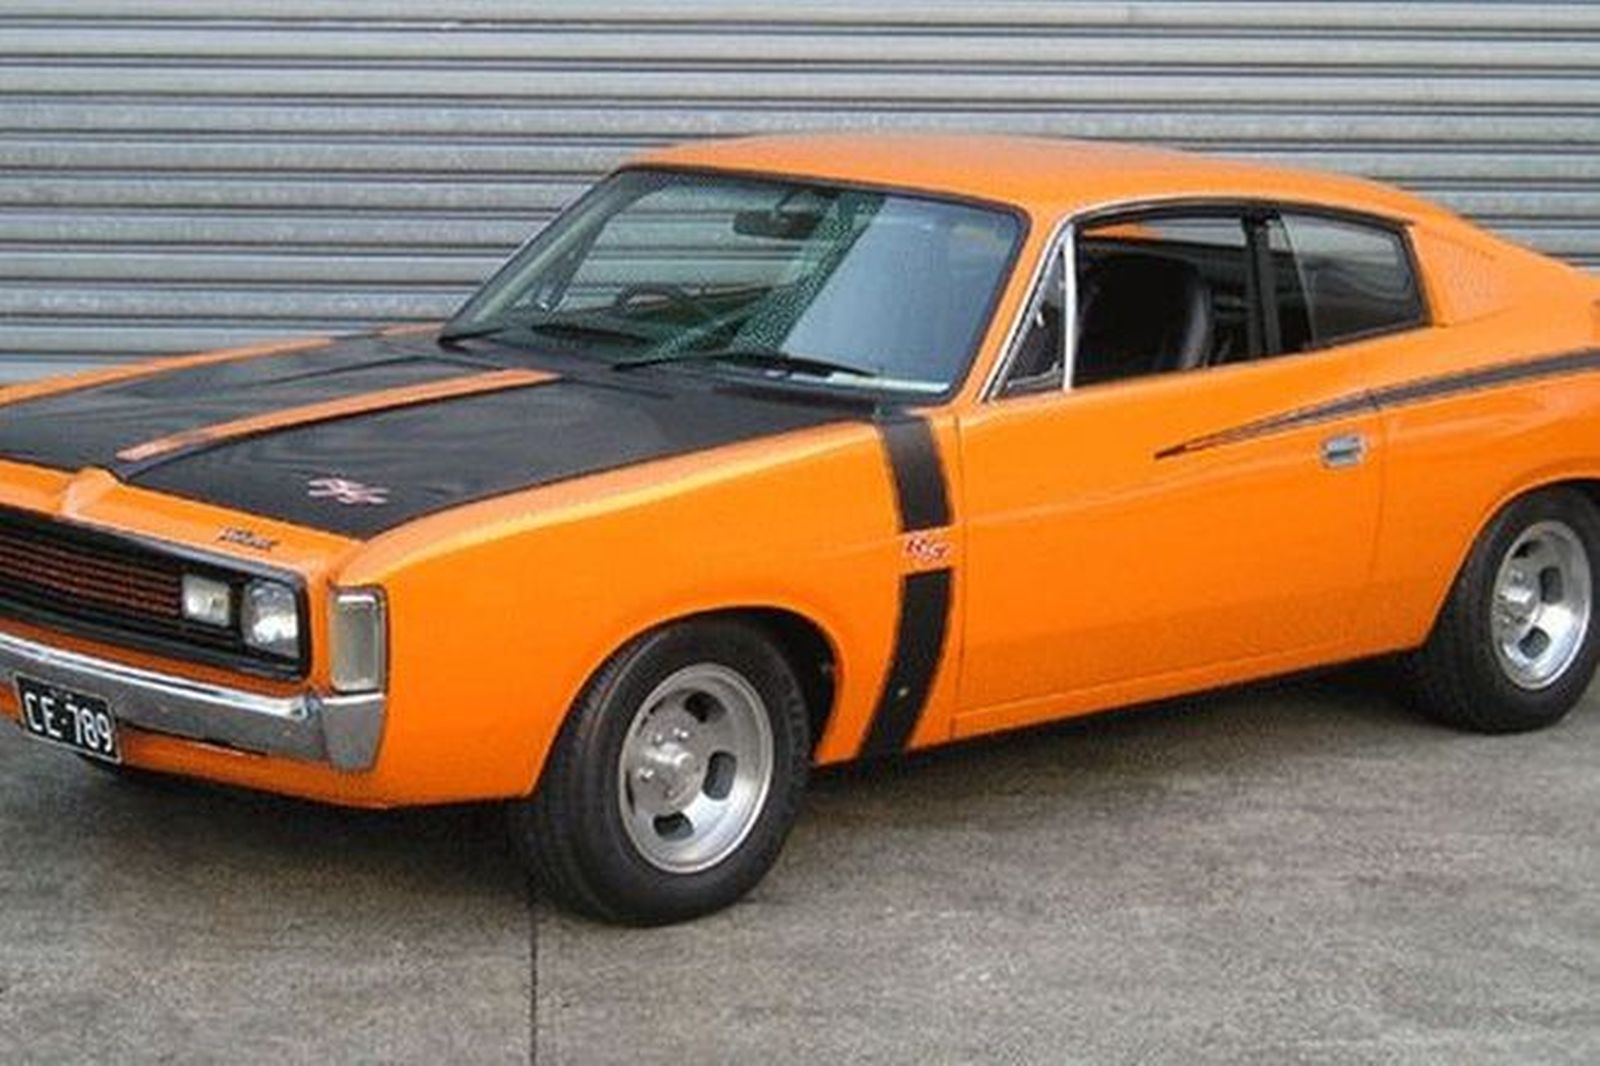 Chrysler Valiant Charger R/T E38 'Bathurst' Coupe